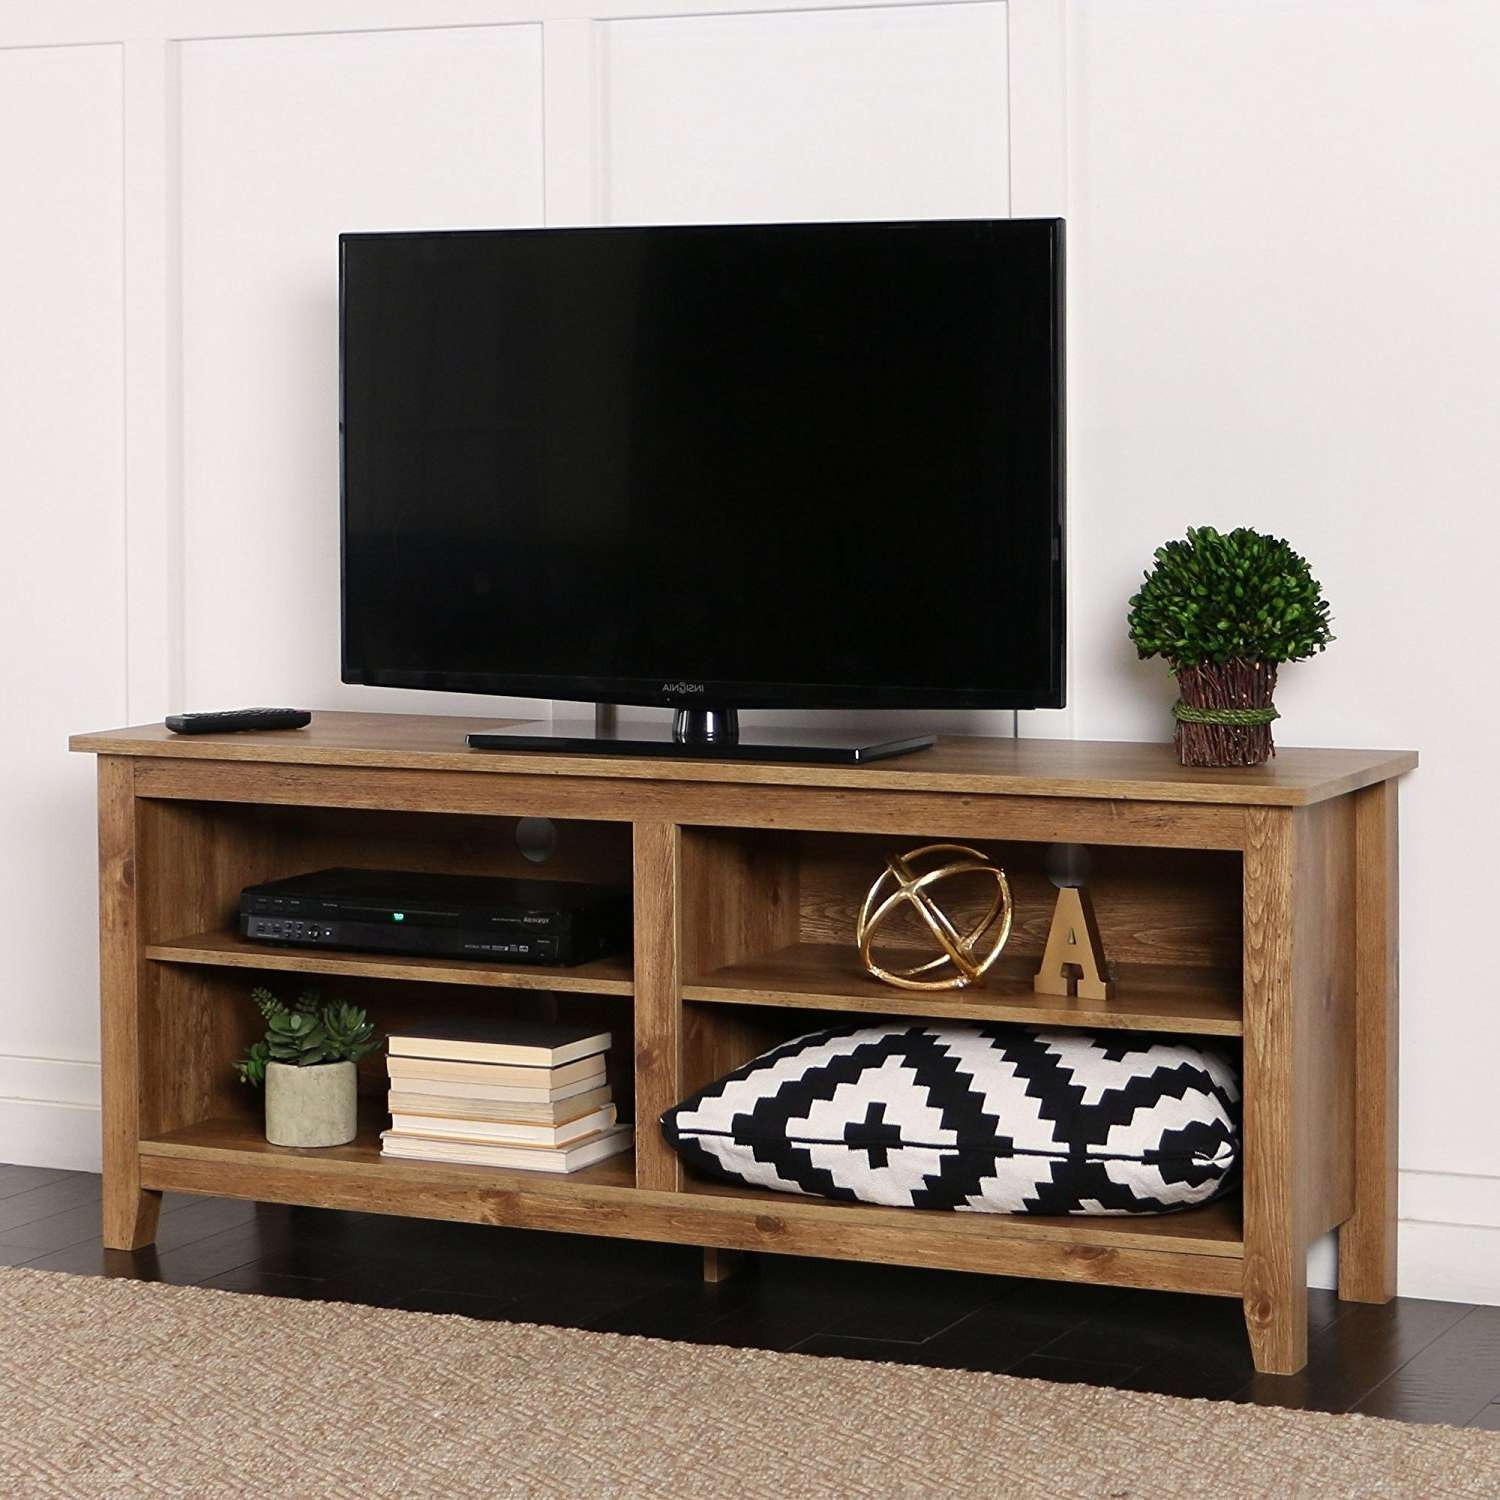 Inspirational Corner Tv Stands For 55 Inch Tv 90 For Your Interior Regarding 40 Inch Corner Tv Stands (View 6 of 15)